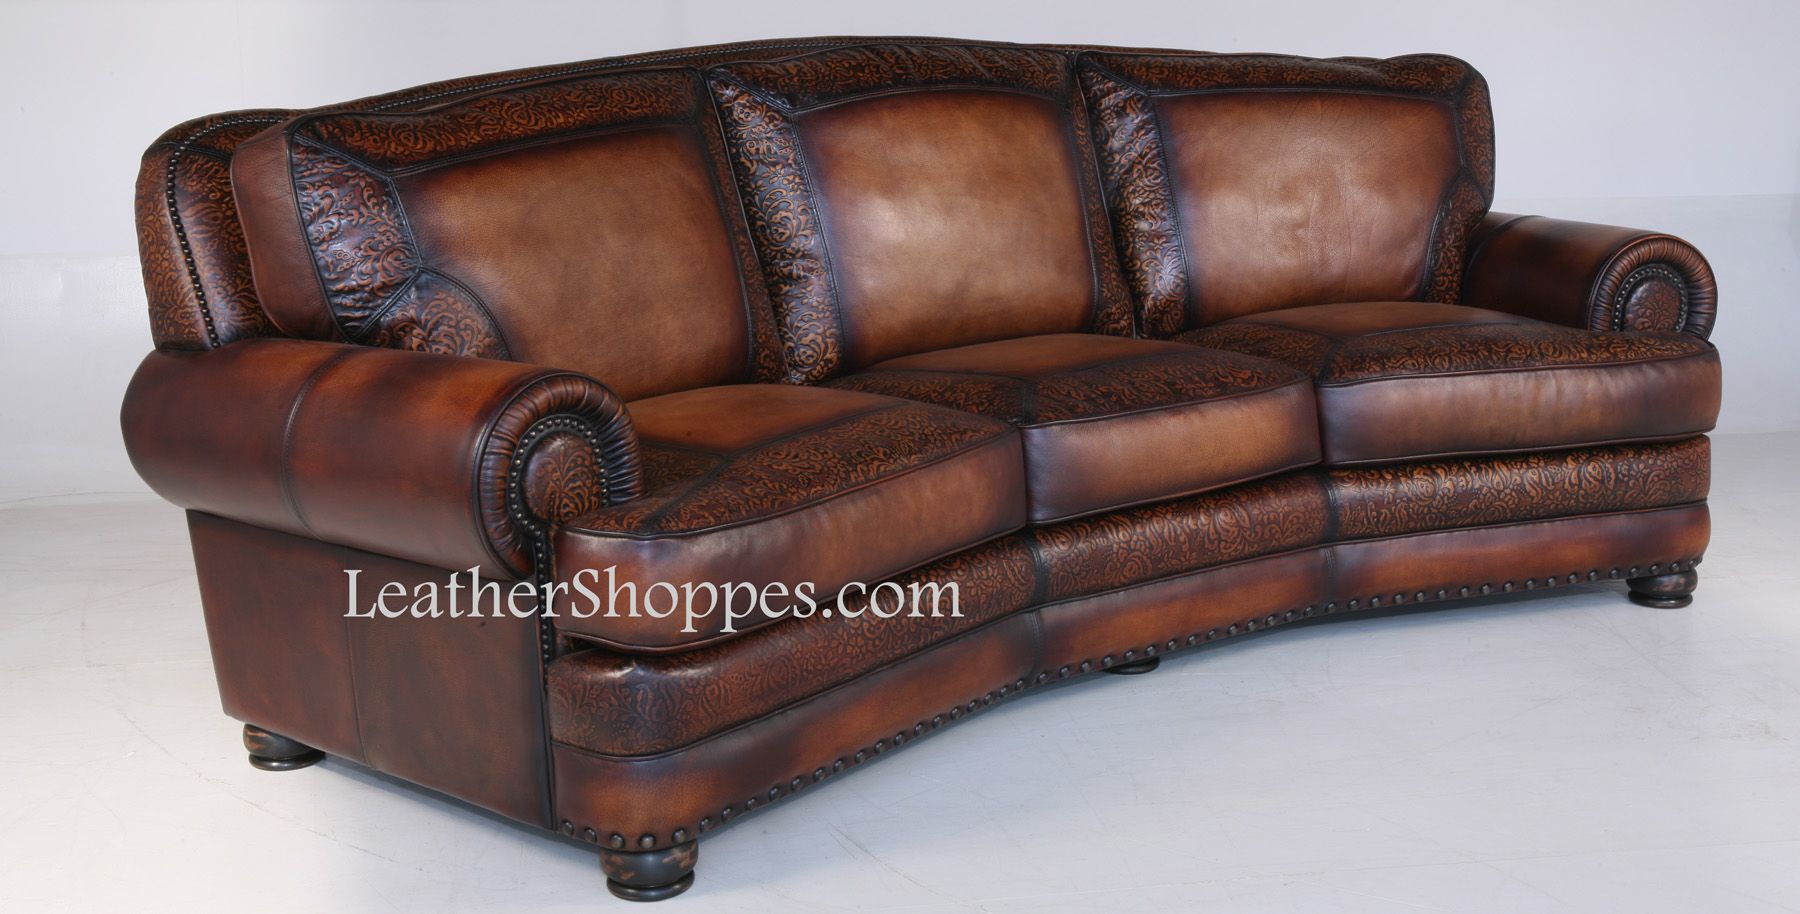 Western Couches Living Room Furniture Sandringham Conversation Sofa At Leathershoppescom Leather